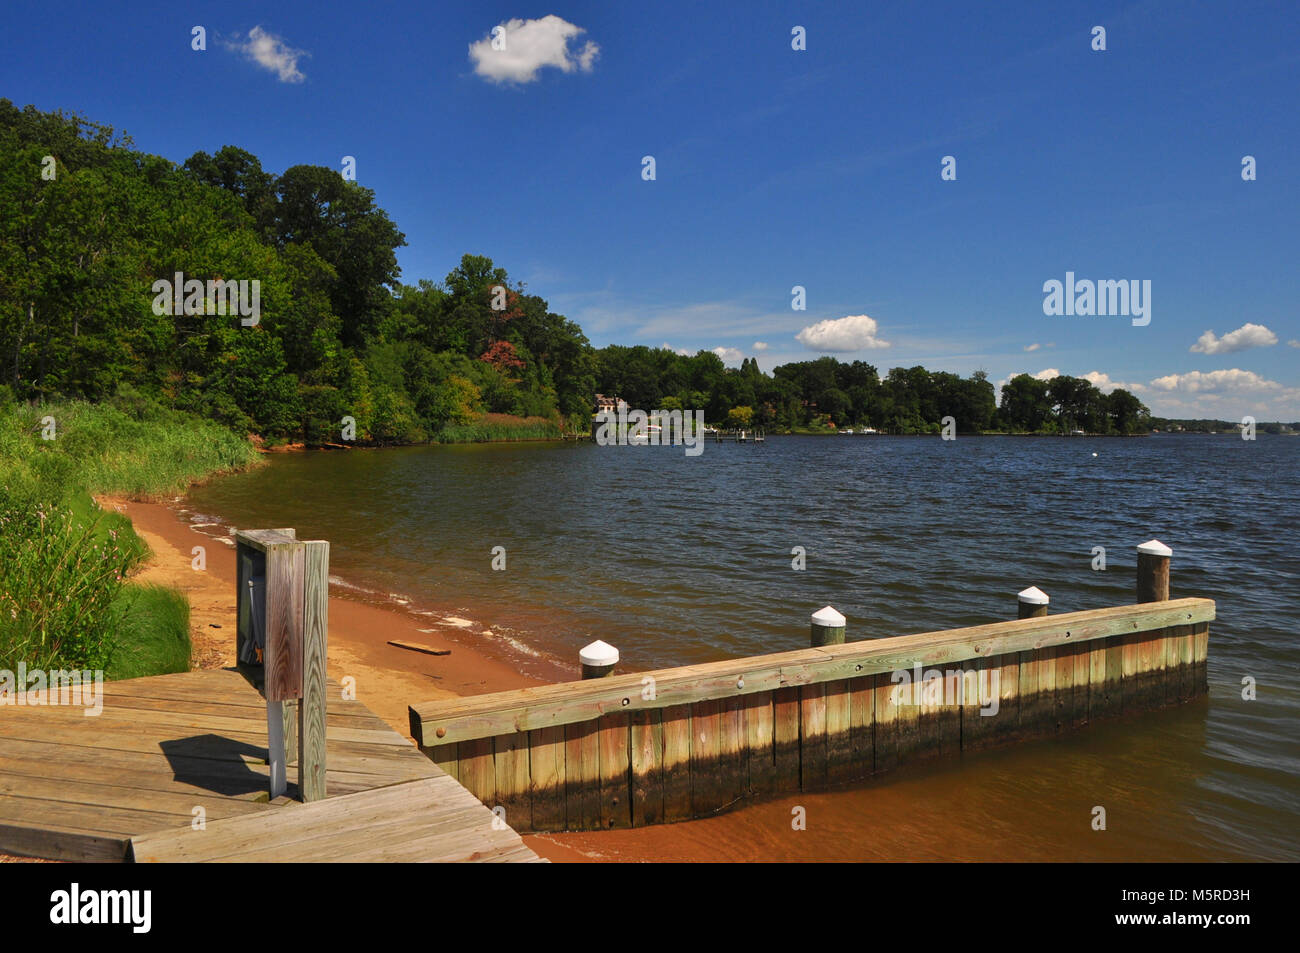 View from Marina in Annapolis - Stock Image